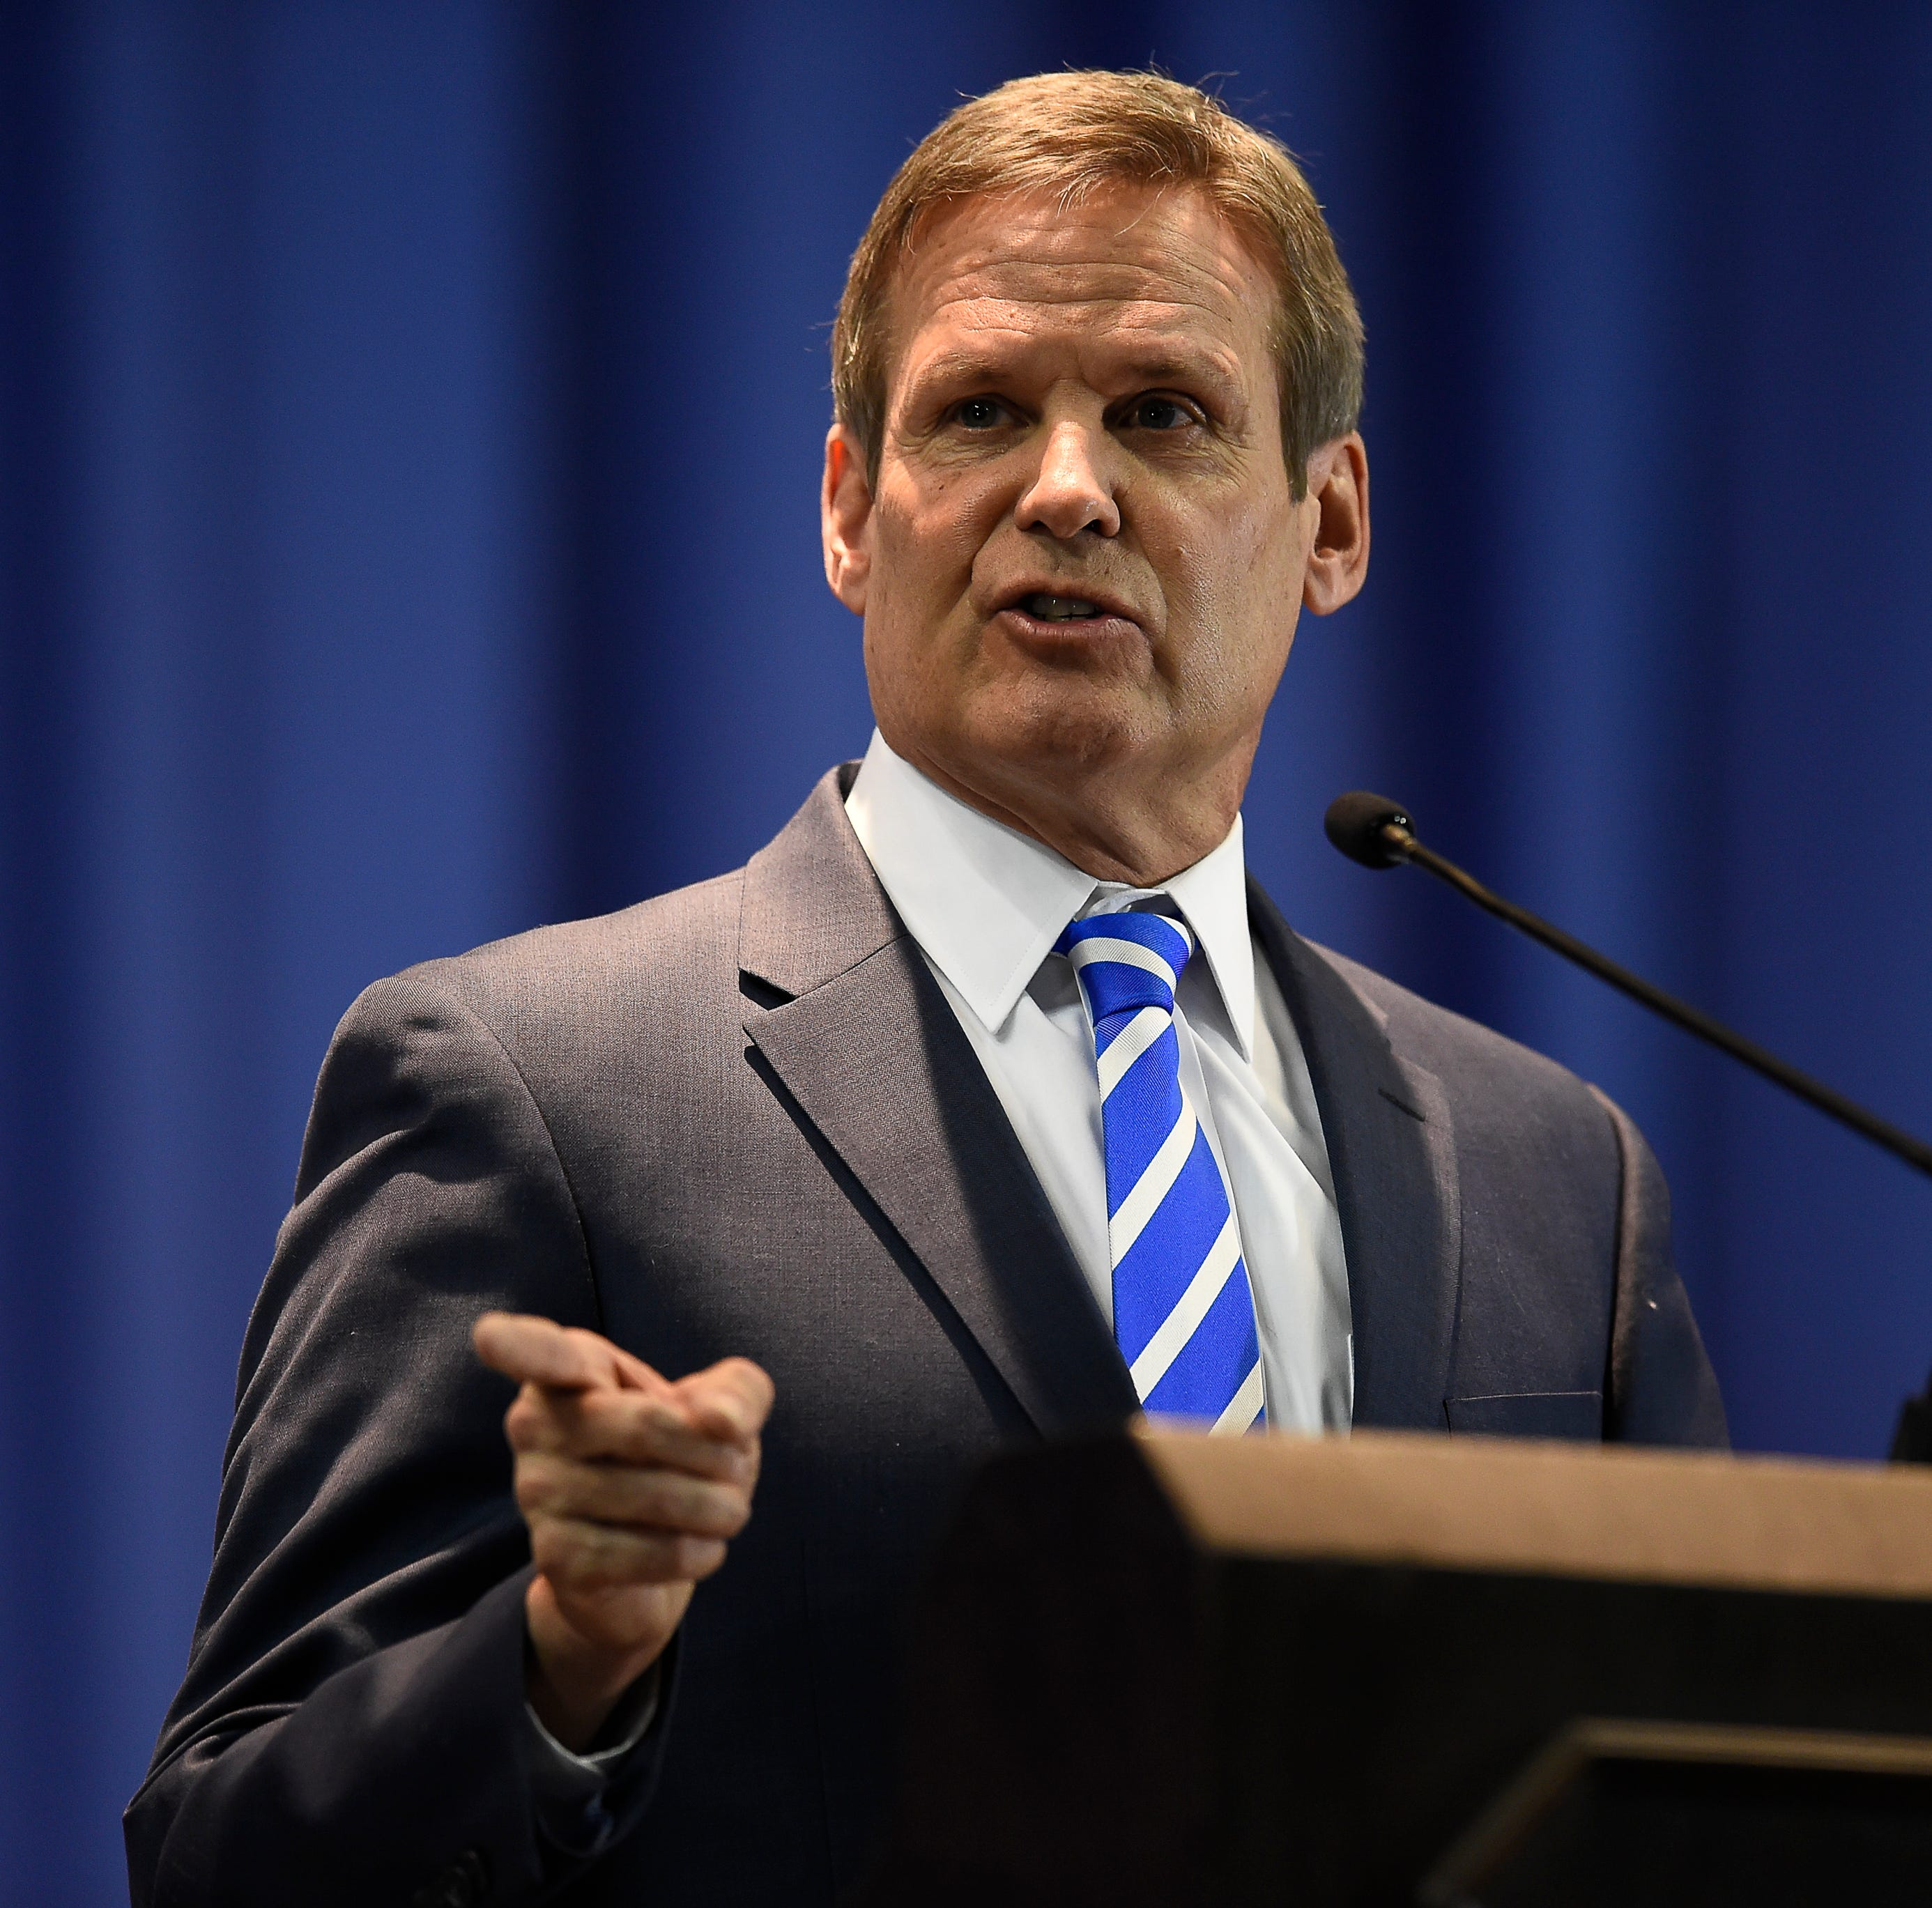 Gov Bill Lee to propose doubling charter school funding in first State of the State speech